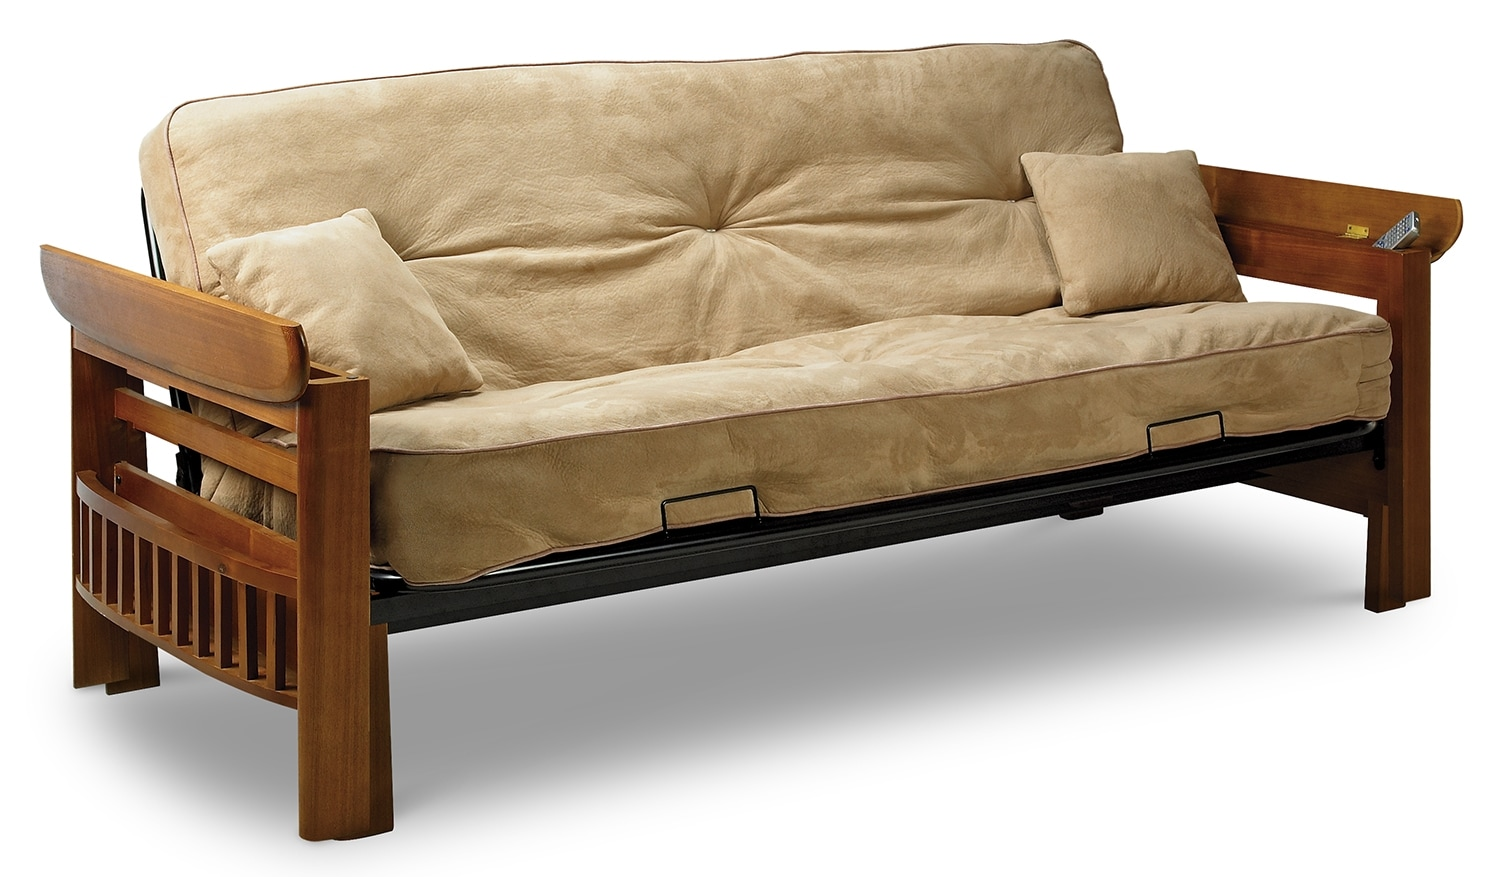 Living Room Furniture - Orlando Futon - Hazelnut